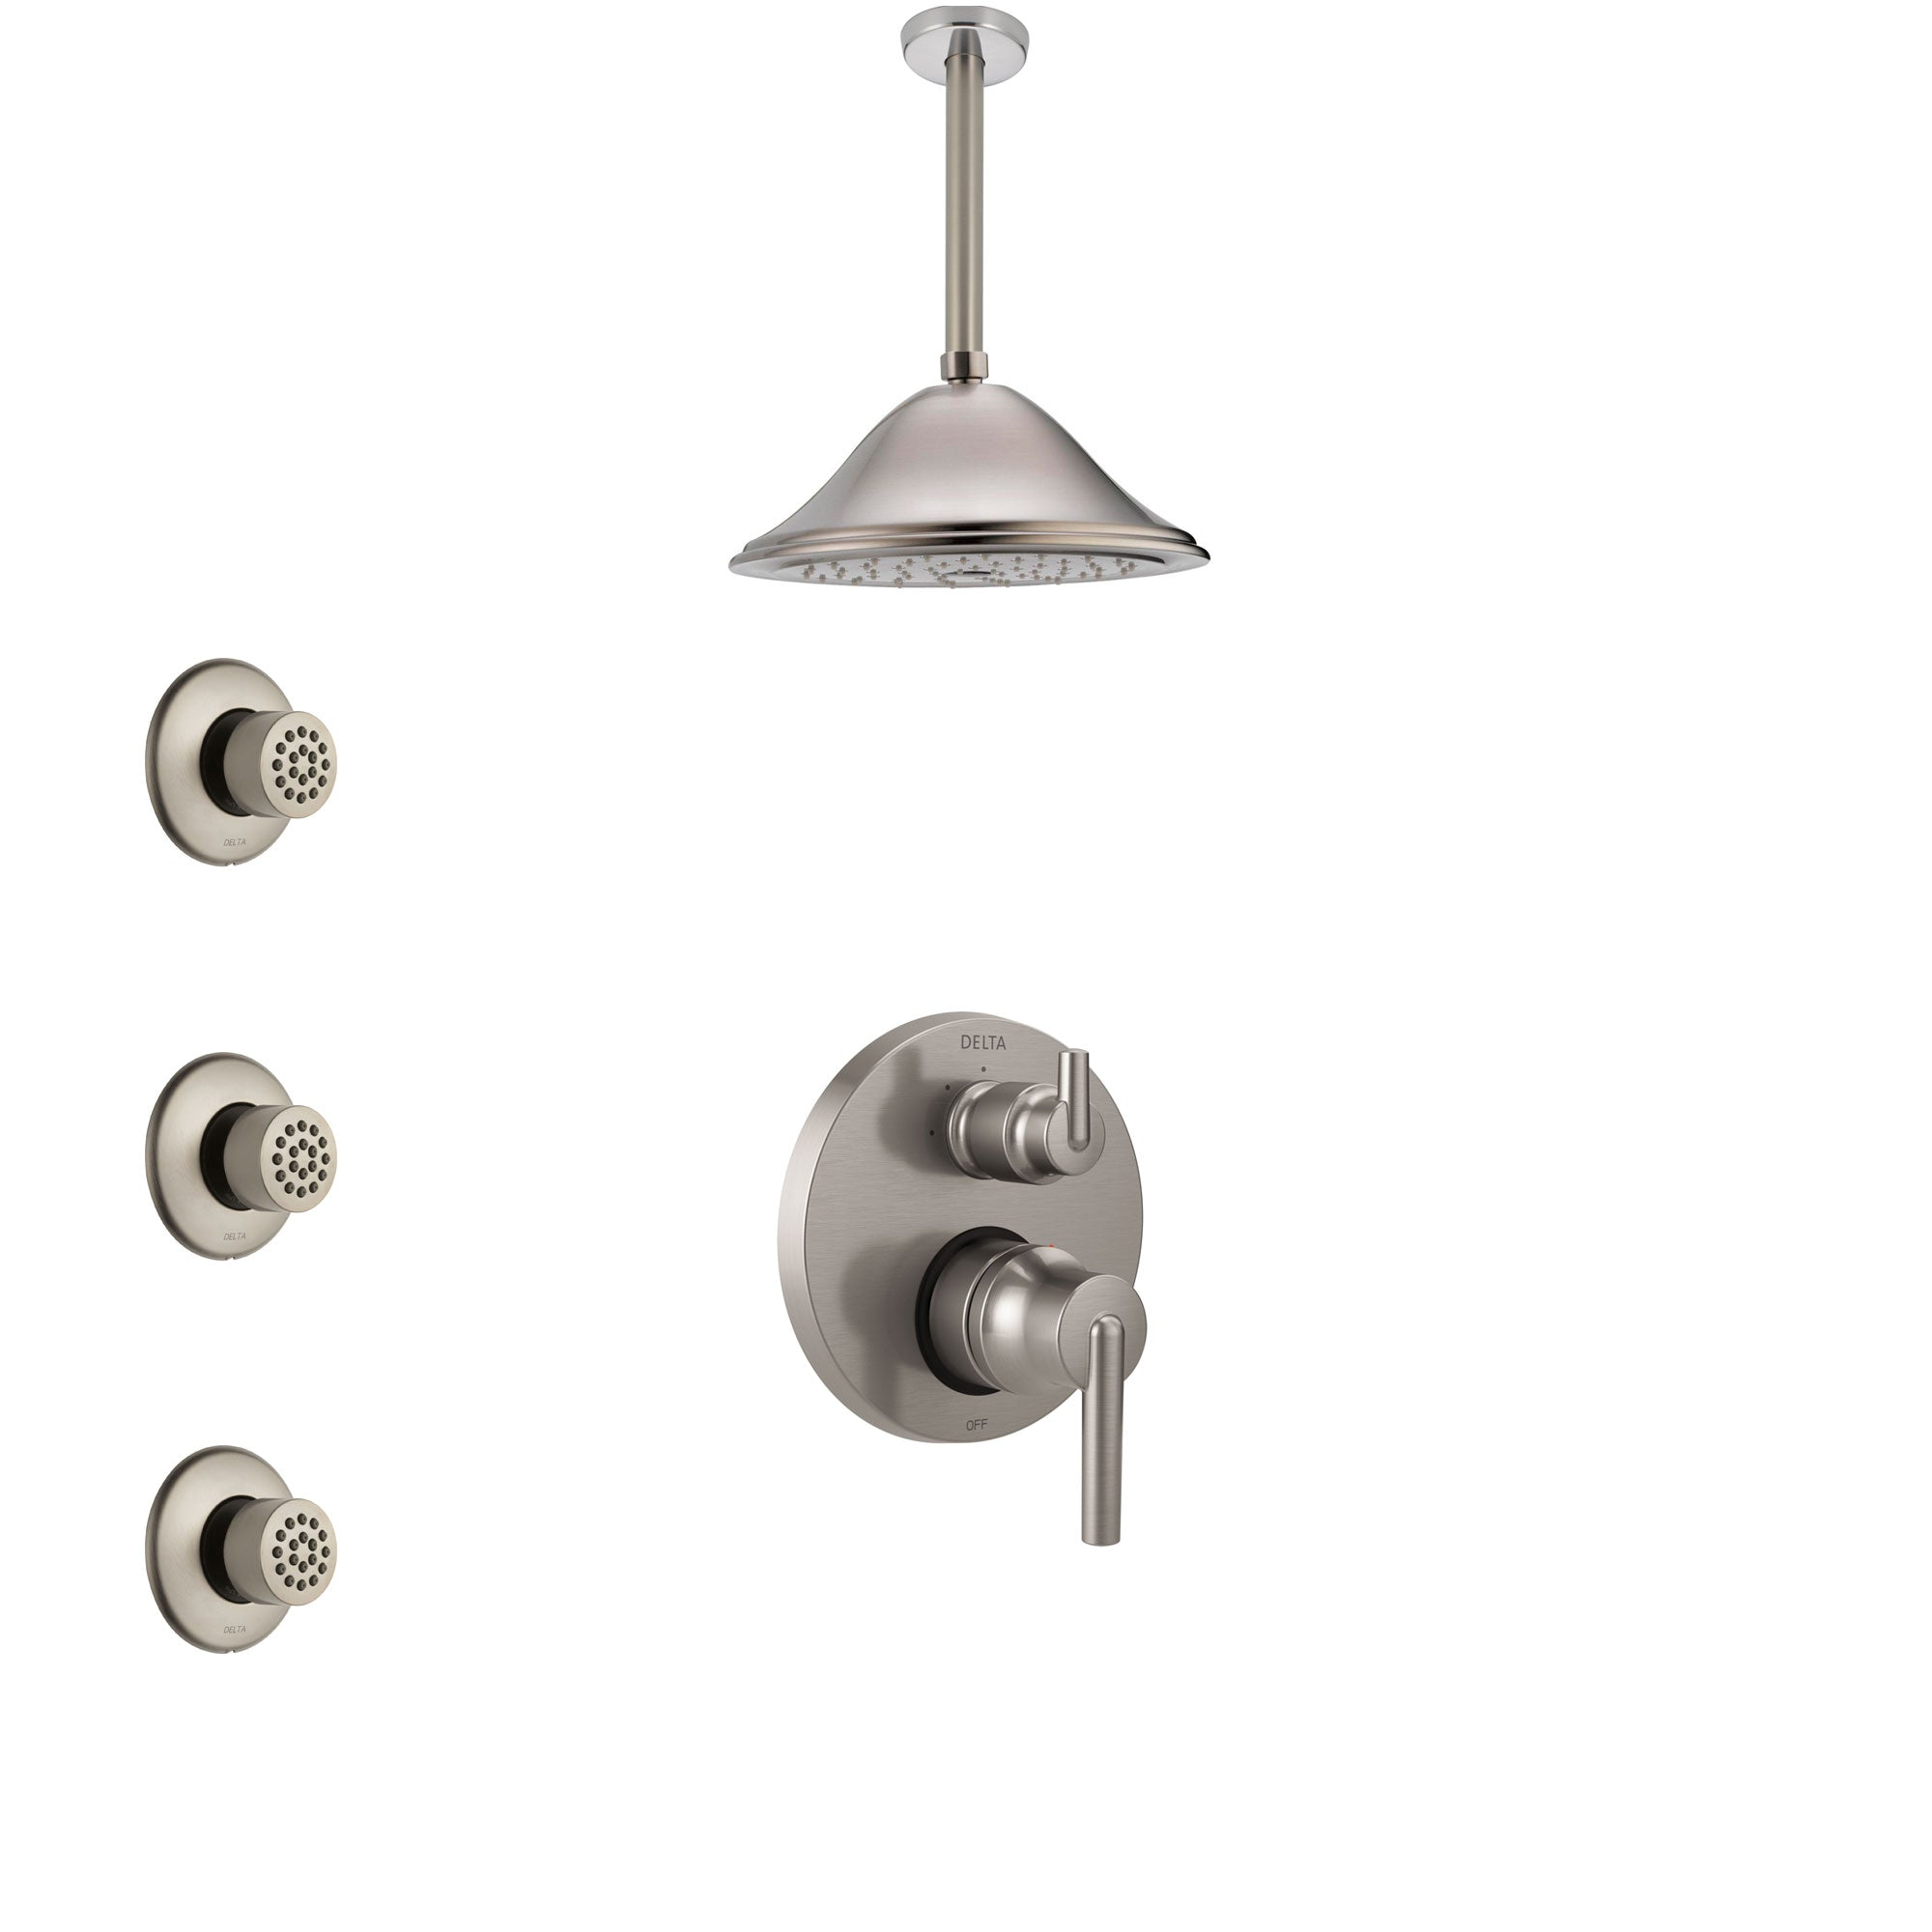 Delta Trinsic Stainless Steel Finish Shower System with Control Handle, Integrated Diverter, Ceiling Mount Showerhead, and 3 Body Sprays SS24859SS6